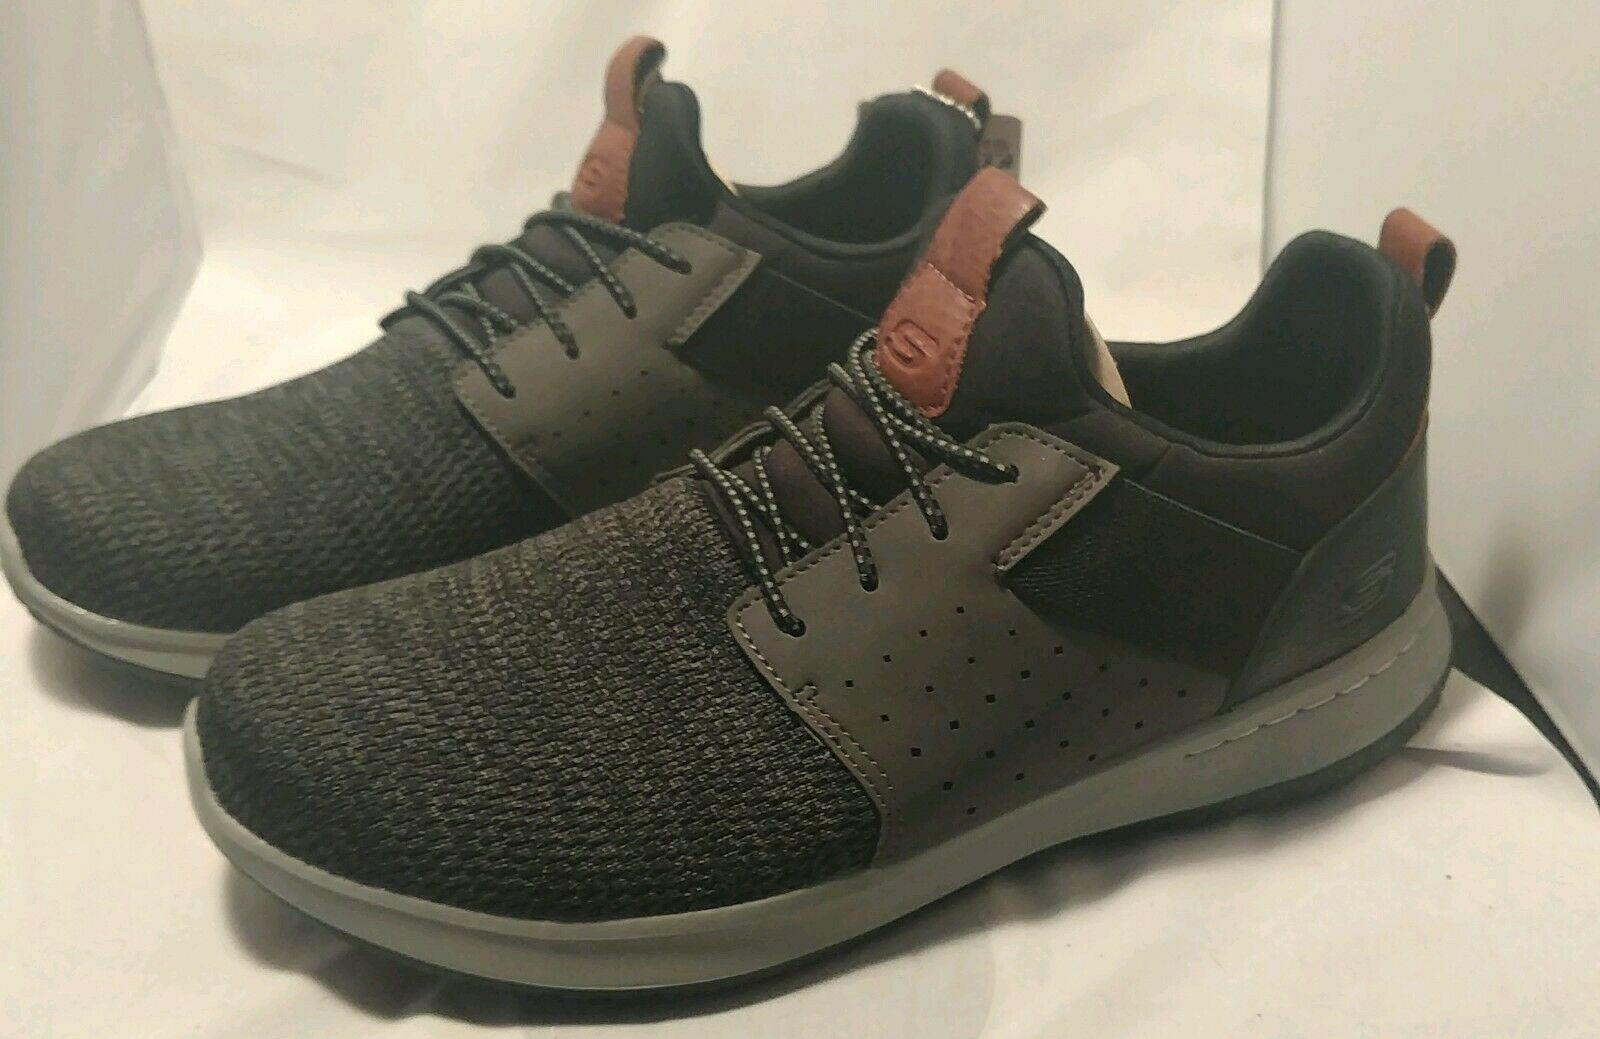 Primary image for Men's Skechers CAMBEN 65474BKGY Black/Grey Shoes trainers size 9.5 Mens athletic